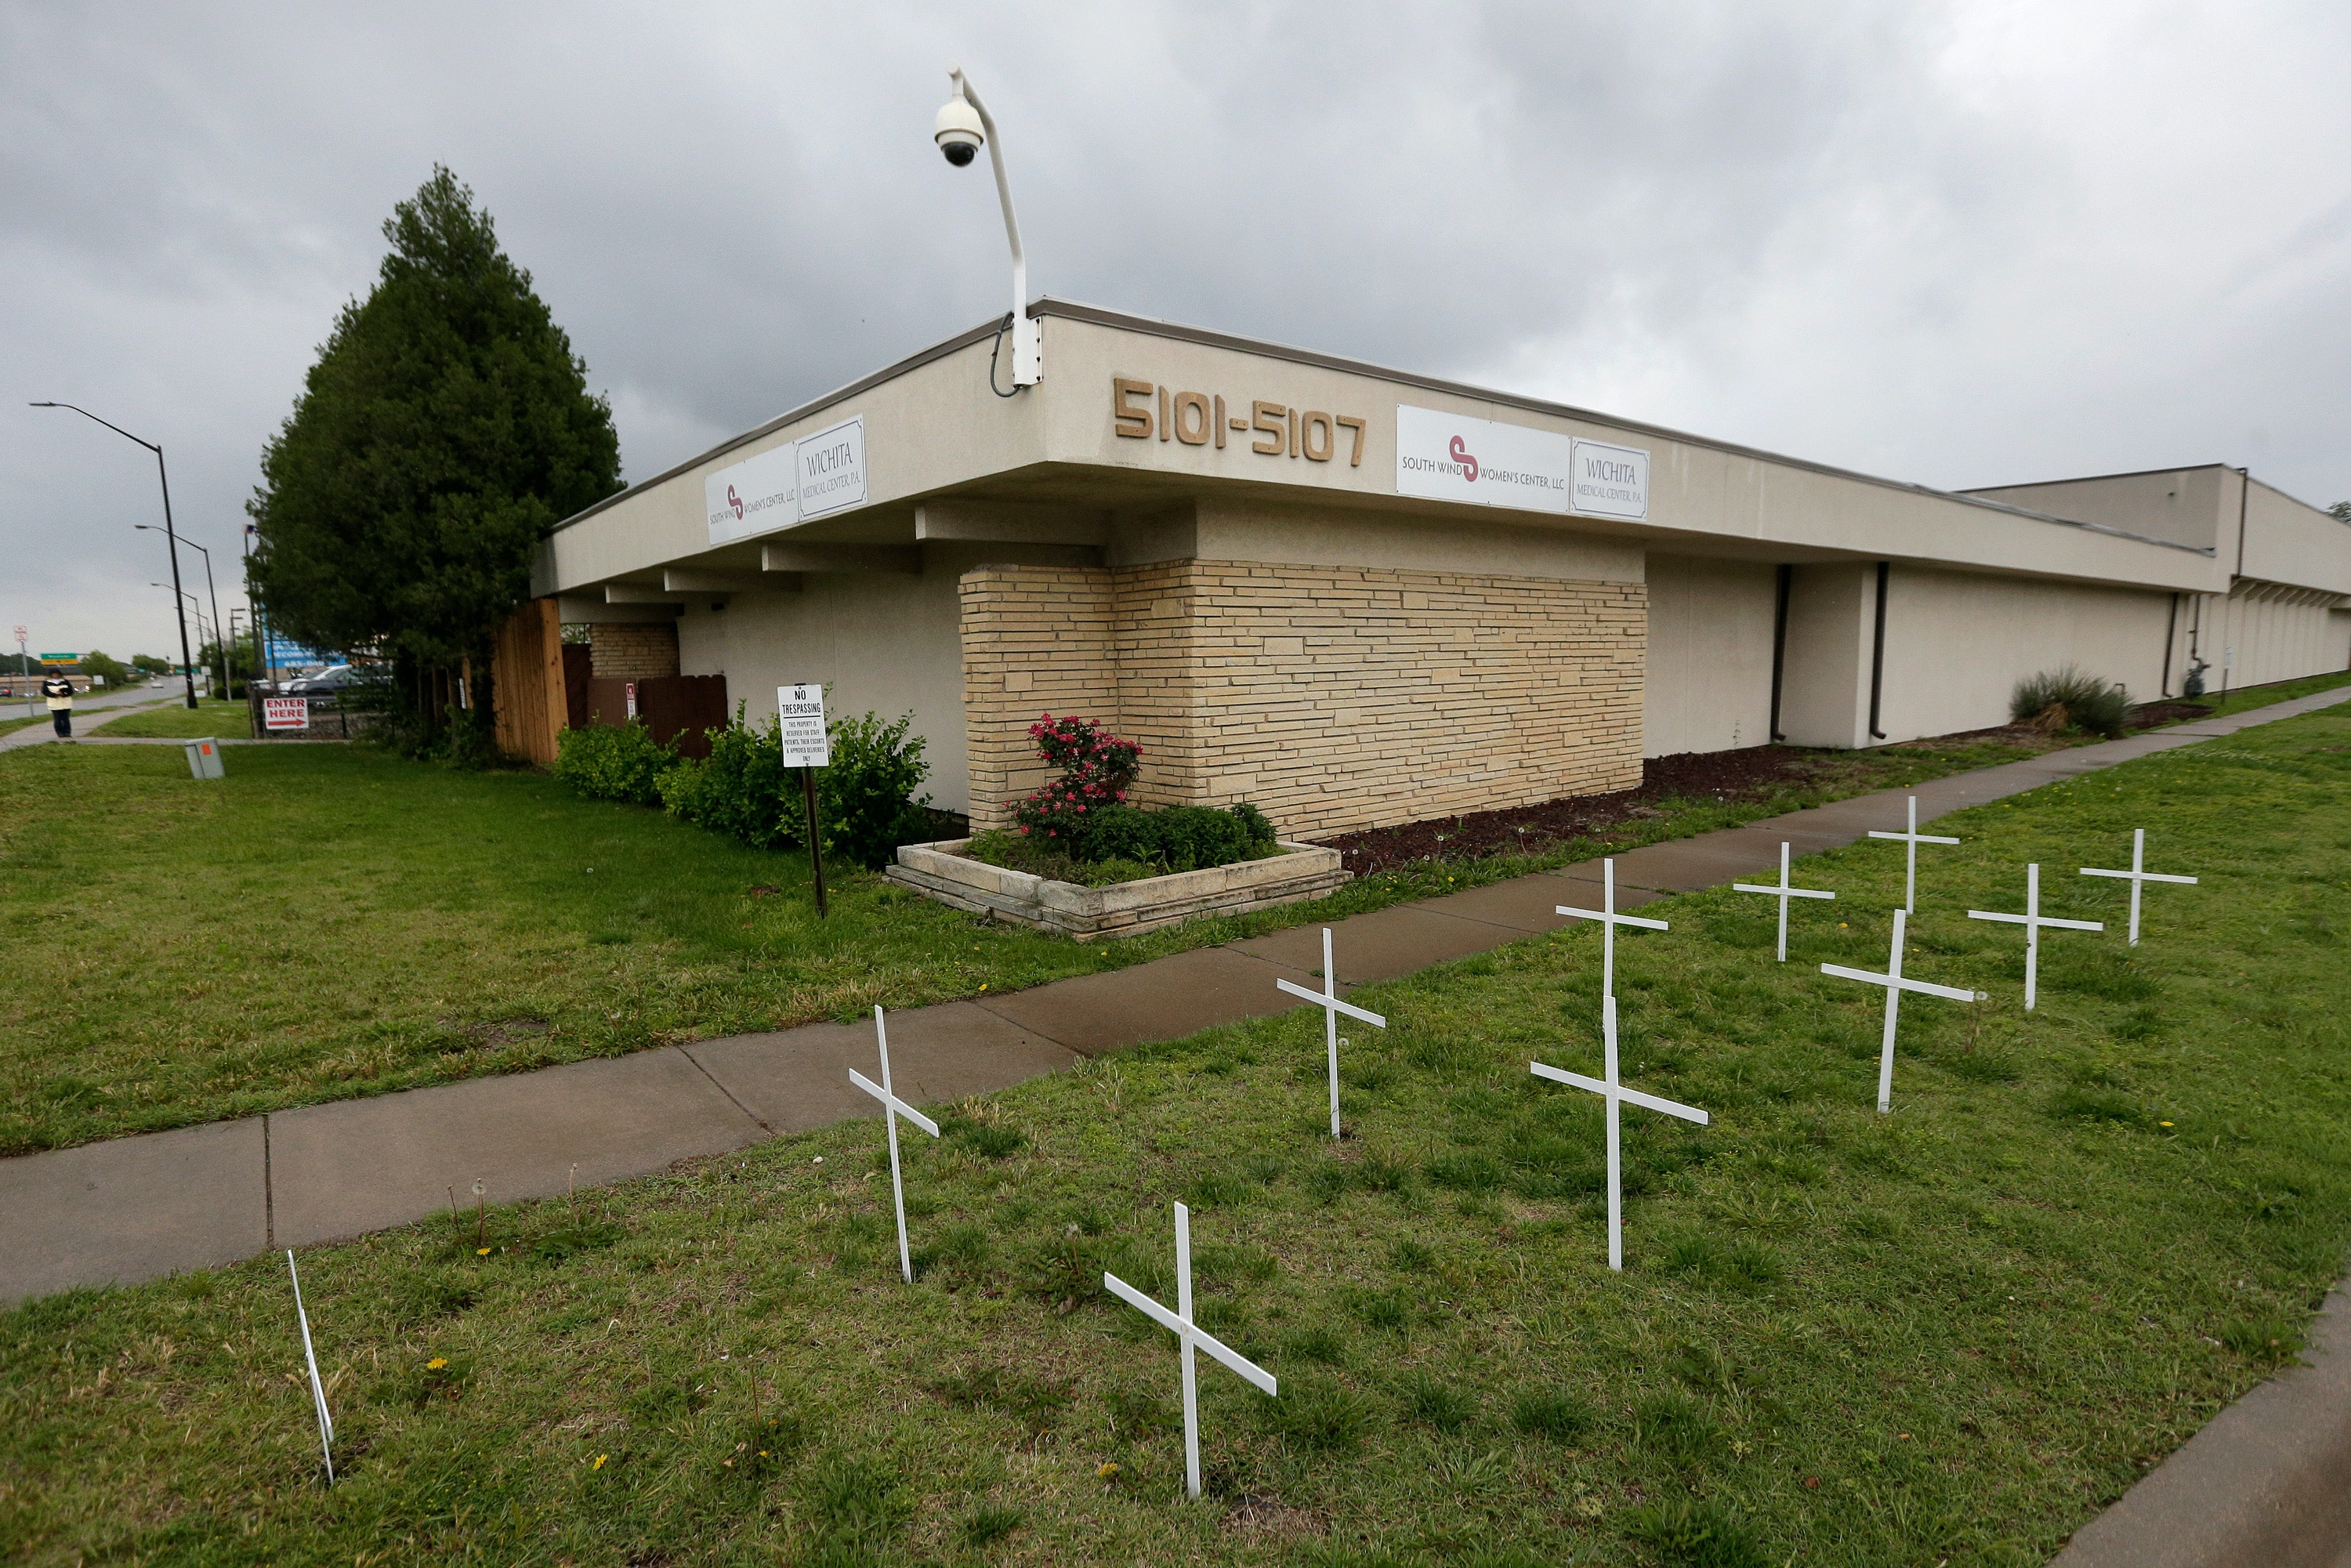 In this photo taken Thursday, May 19, 2016, crosses placed by anti-abortion protesters stand in the lawn outside the South Wind Women's Center in Wichita, Kan. Julie Burkhart, the executive director at the clinic, has vowed to keep the facility open through planned protests this summer marking the 25th anniversary of the 1991 Summer of Mercy protests that led to nearly 2,700 arrests at this and other clinics in Wichita. (AP Photo/Charlie Riedel)